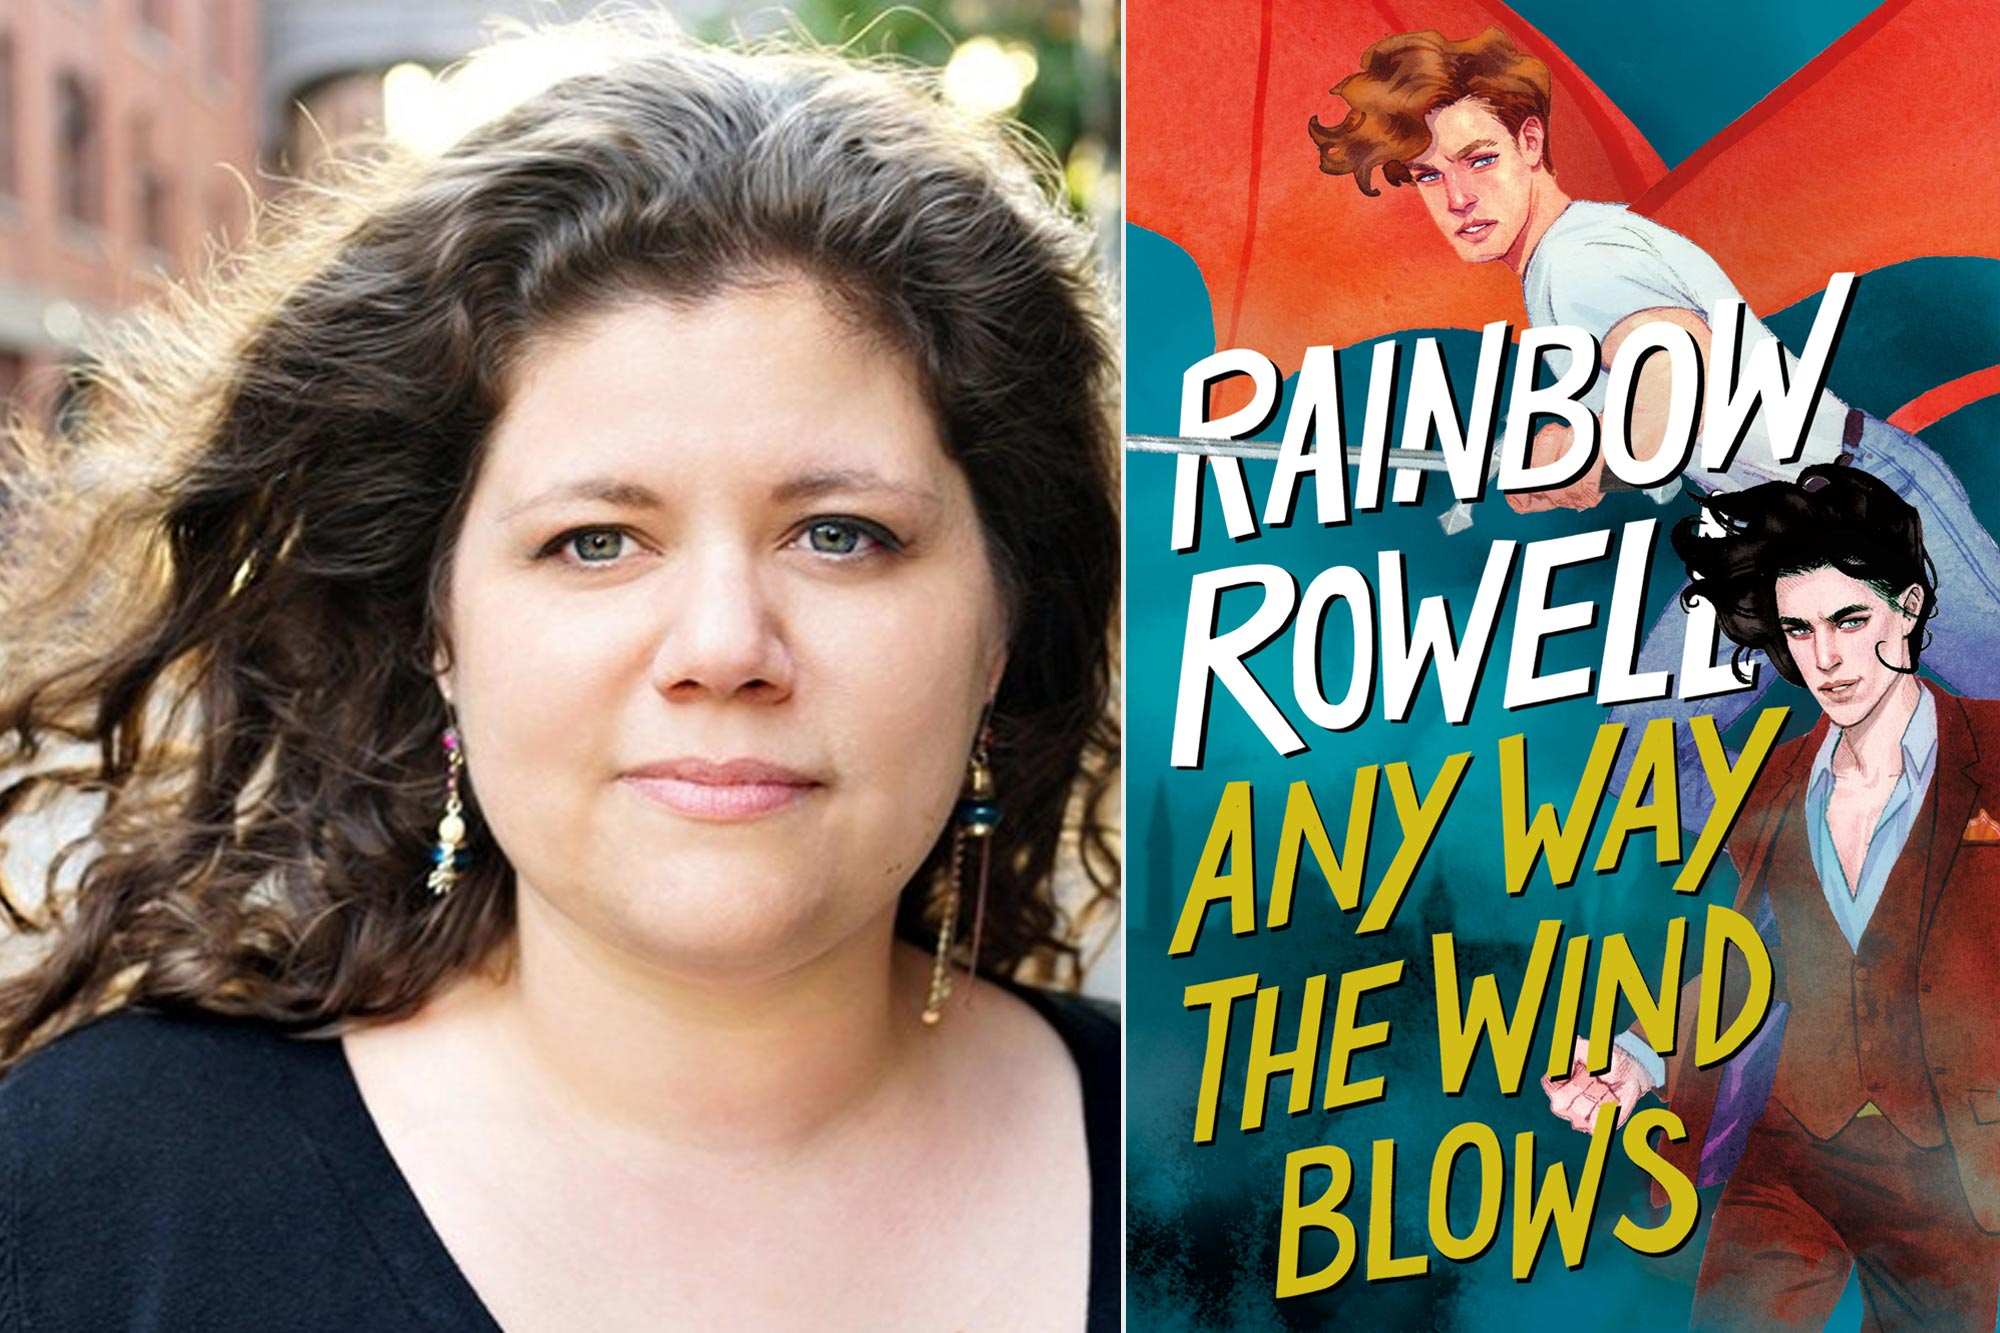 Anyway the Wind Blows By Rainbow Rowell